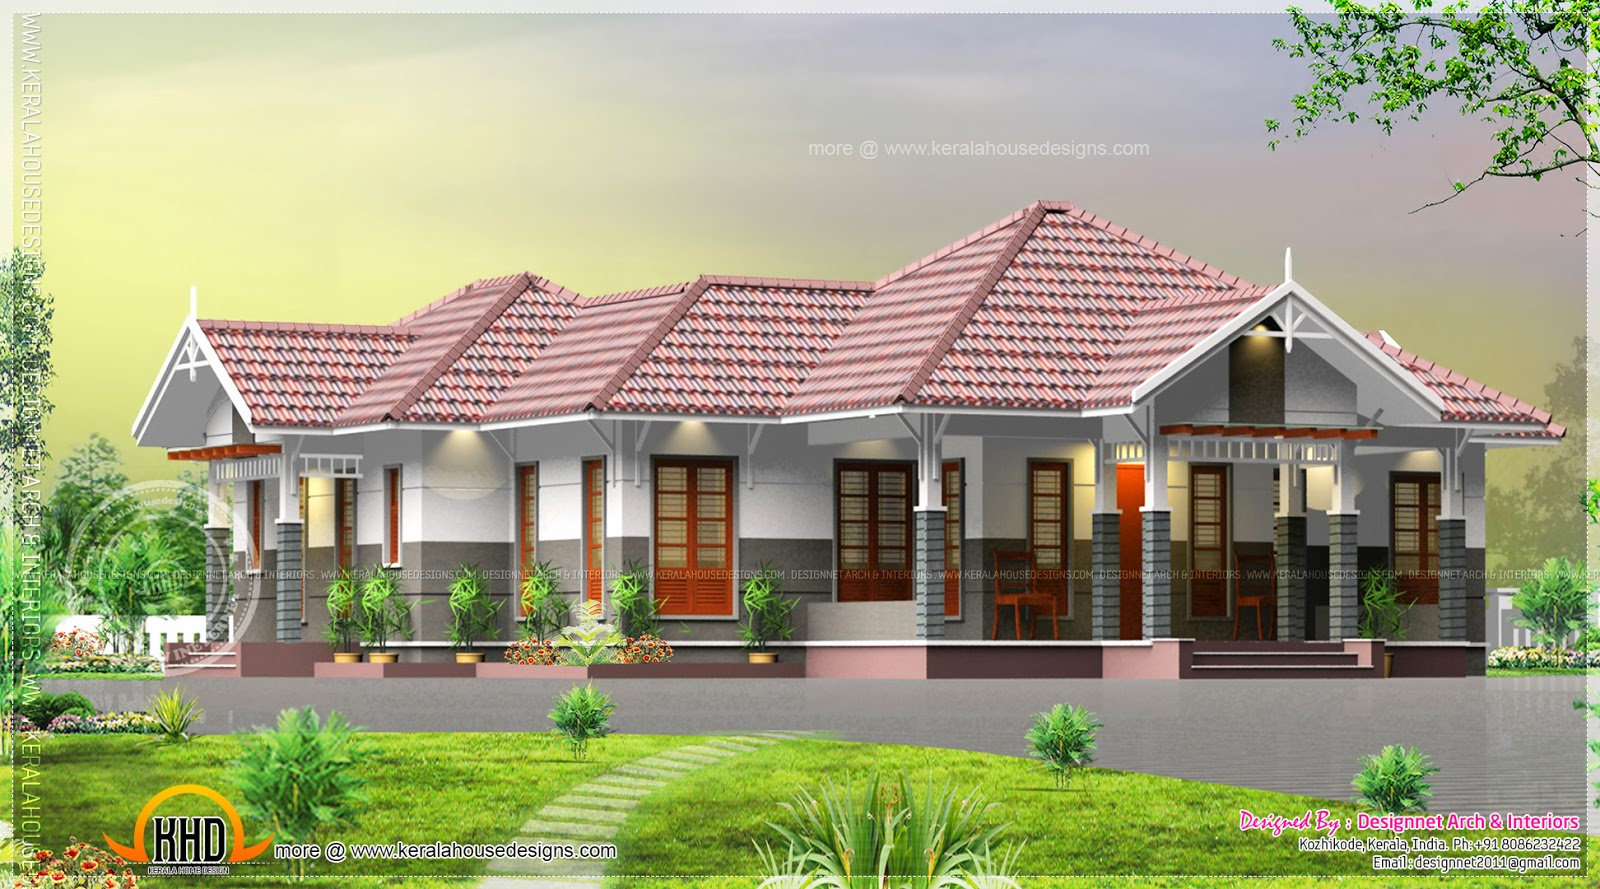 Single floor courtyard 4 bedroom house kerala home for Sloped roof house plans in india